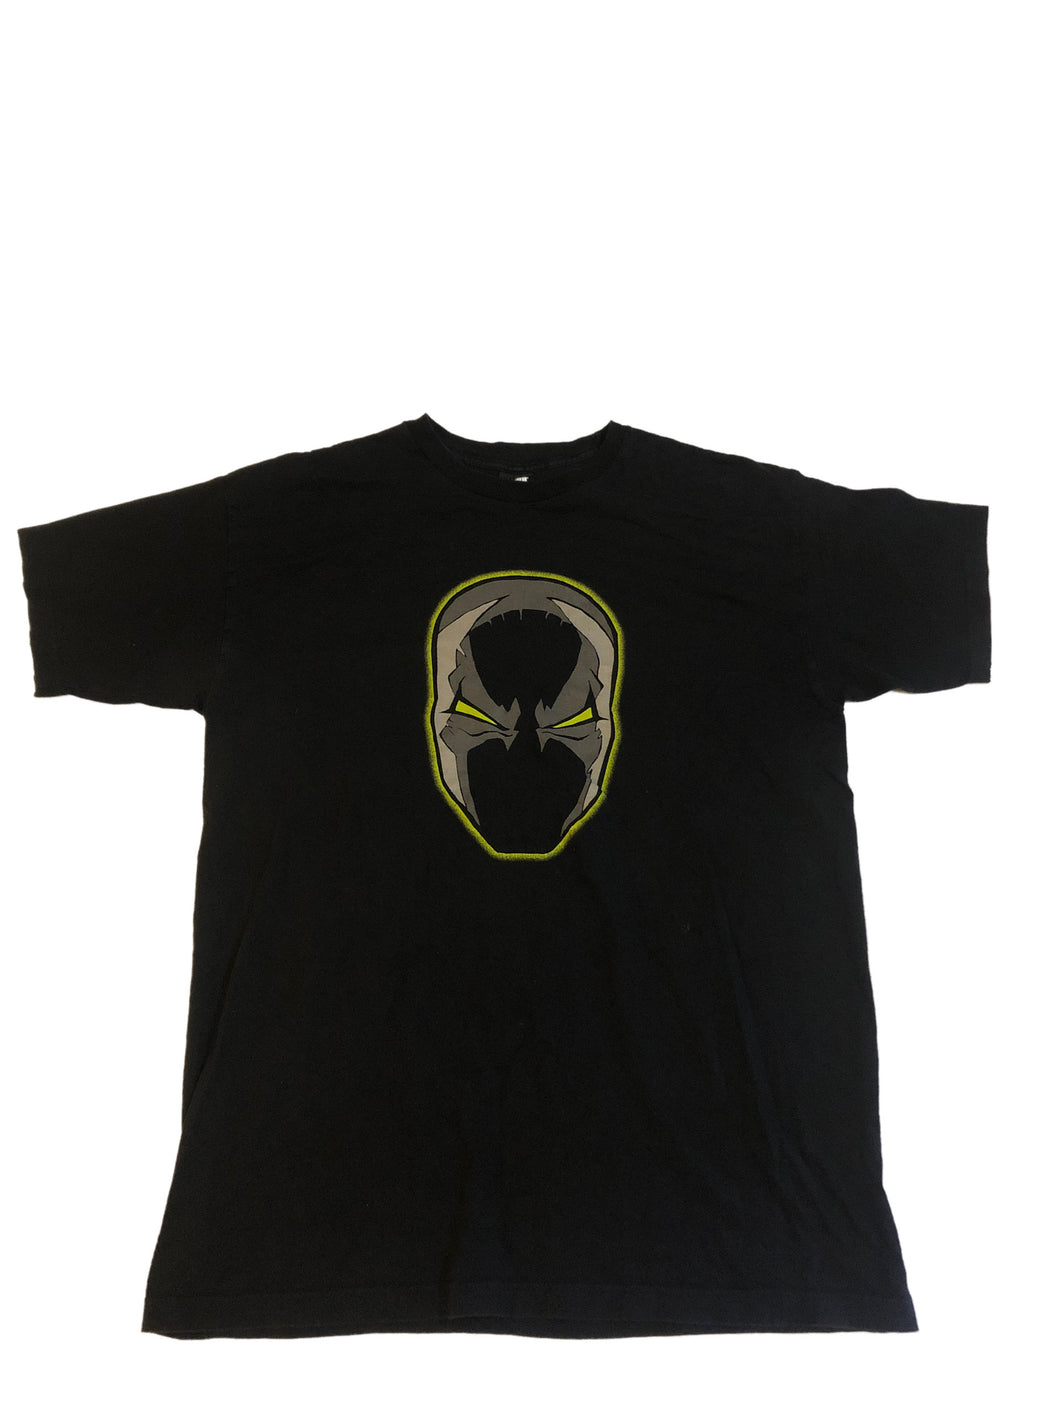 Spawn Animated Series HBO Tee